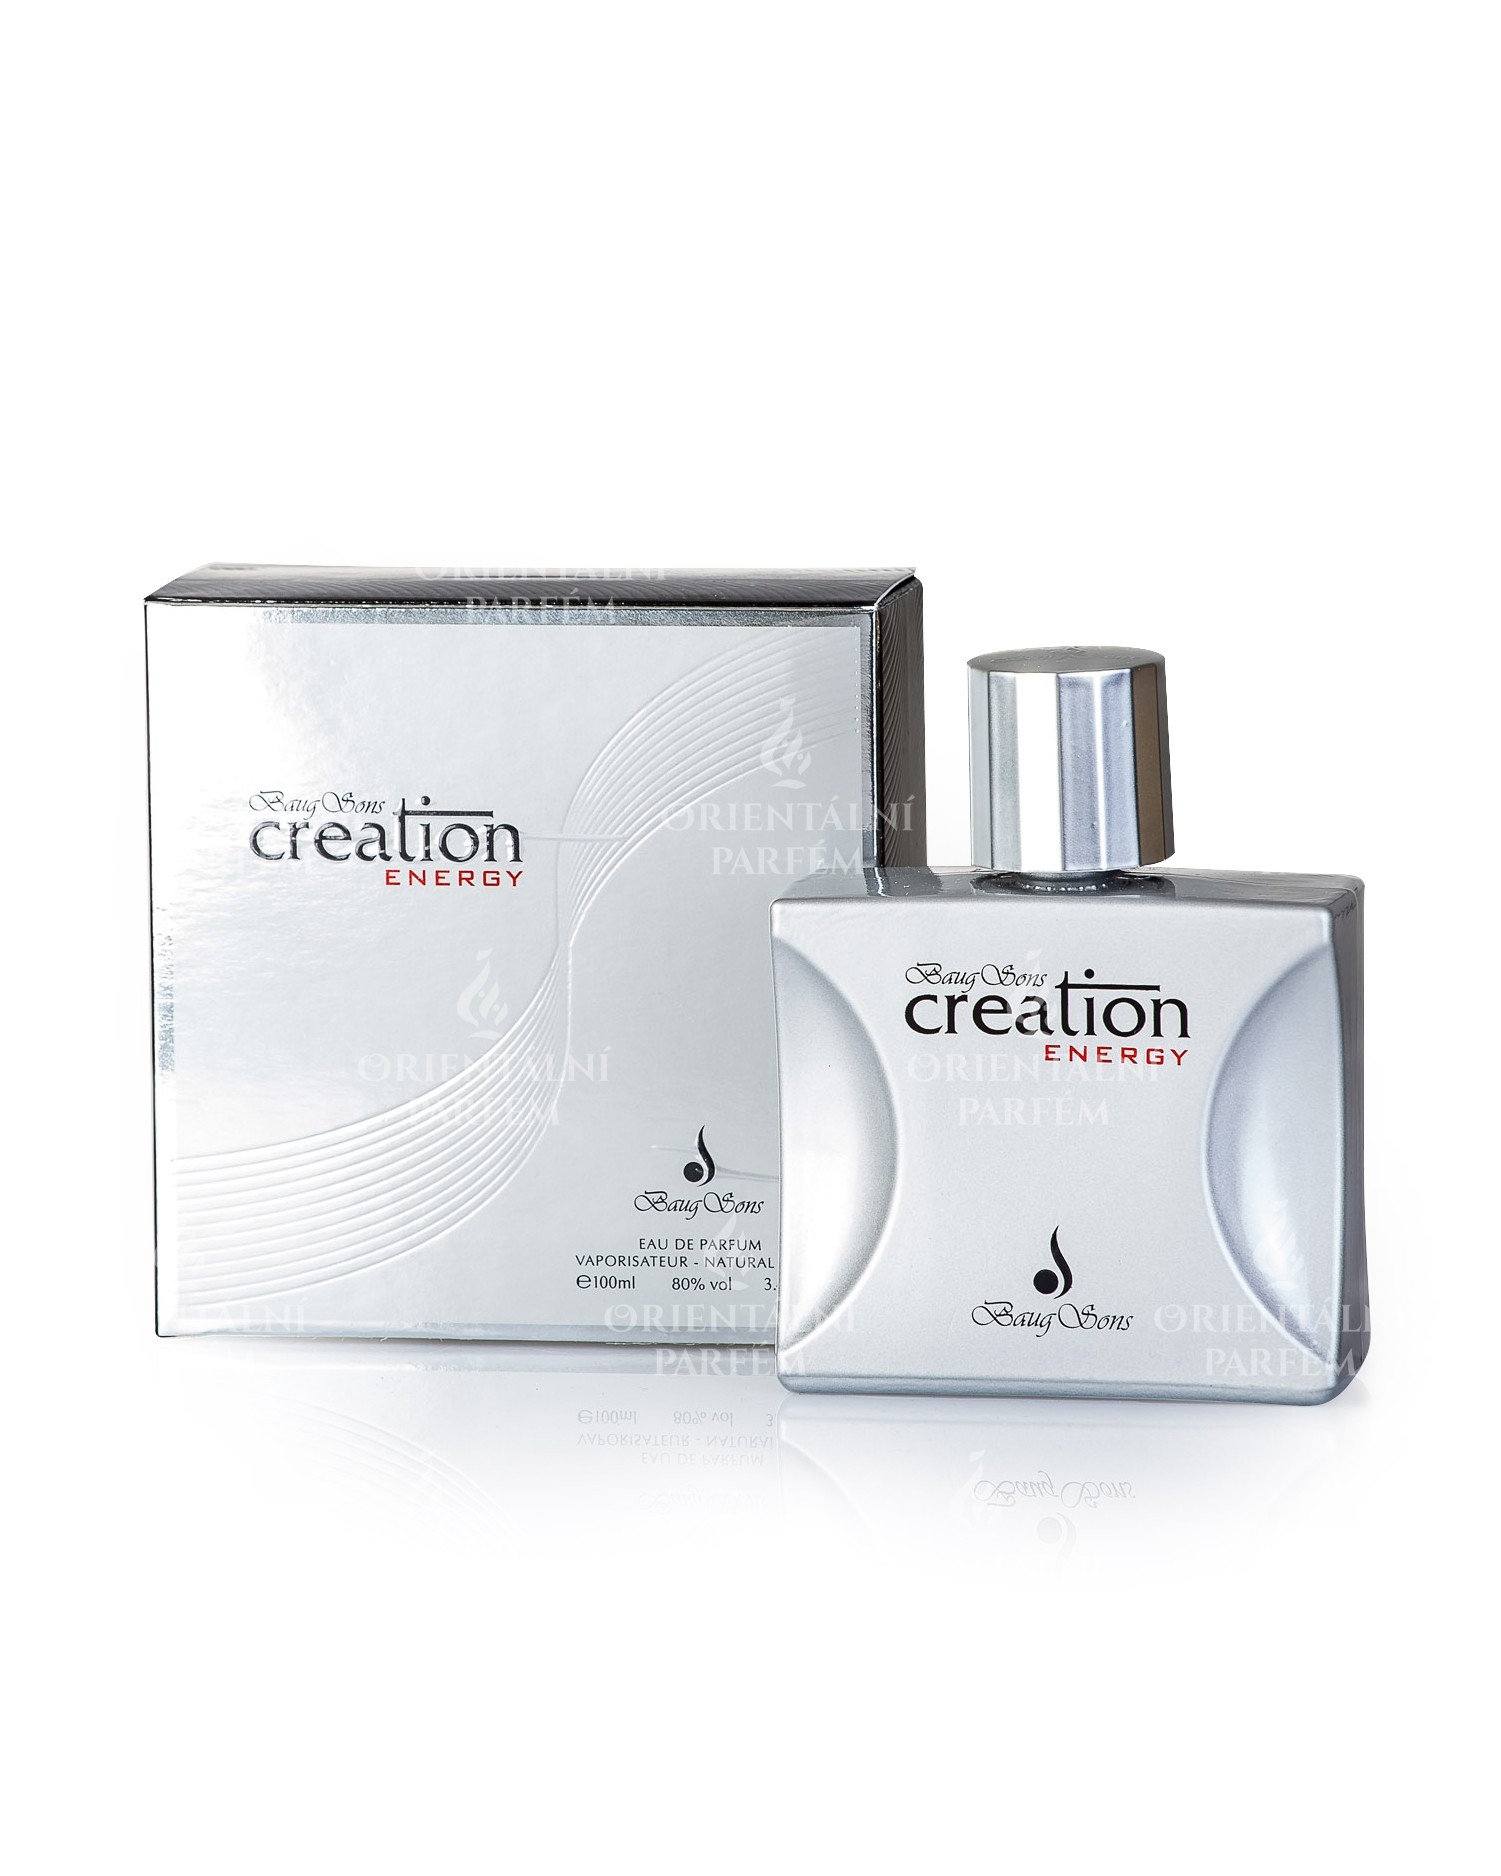 Creation Energy